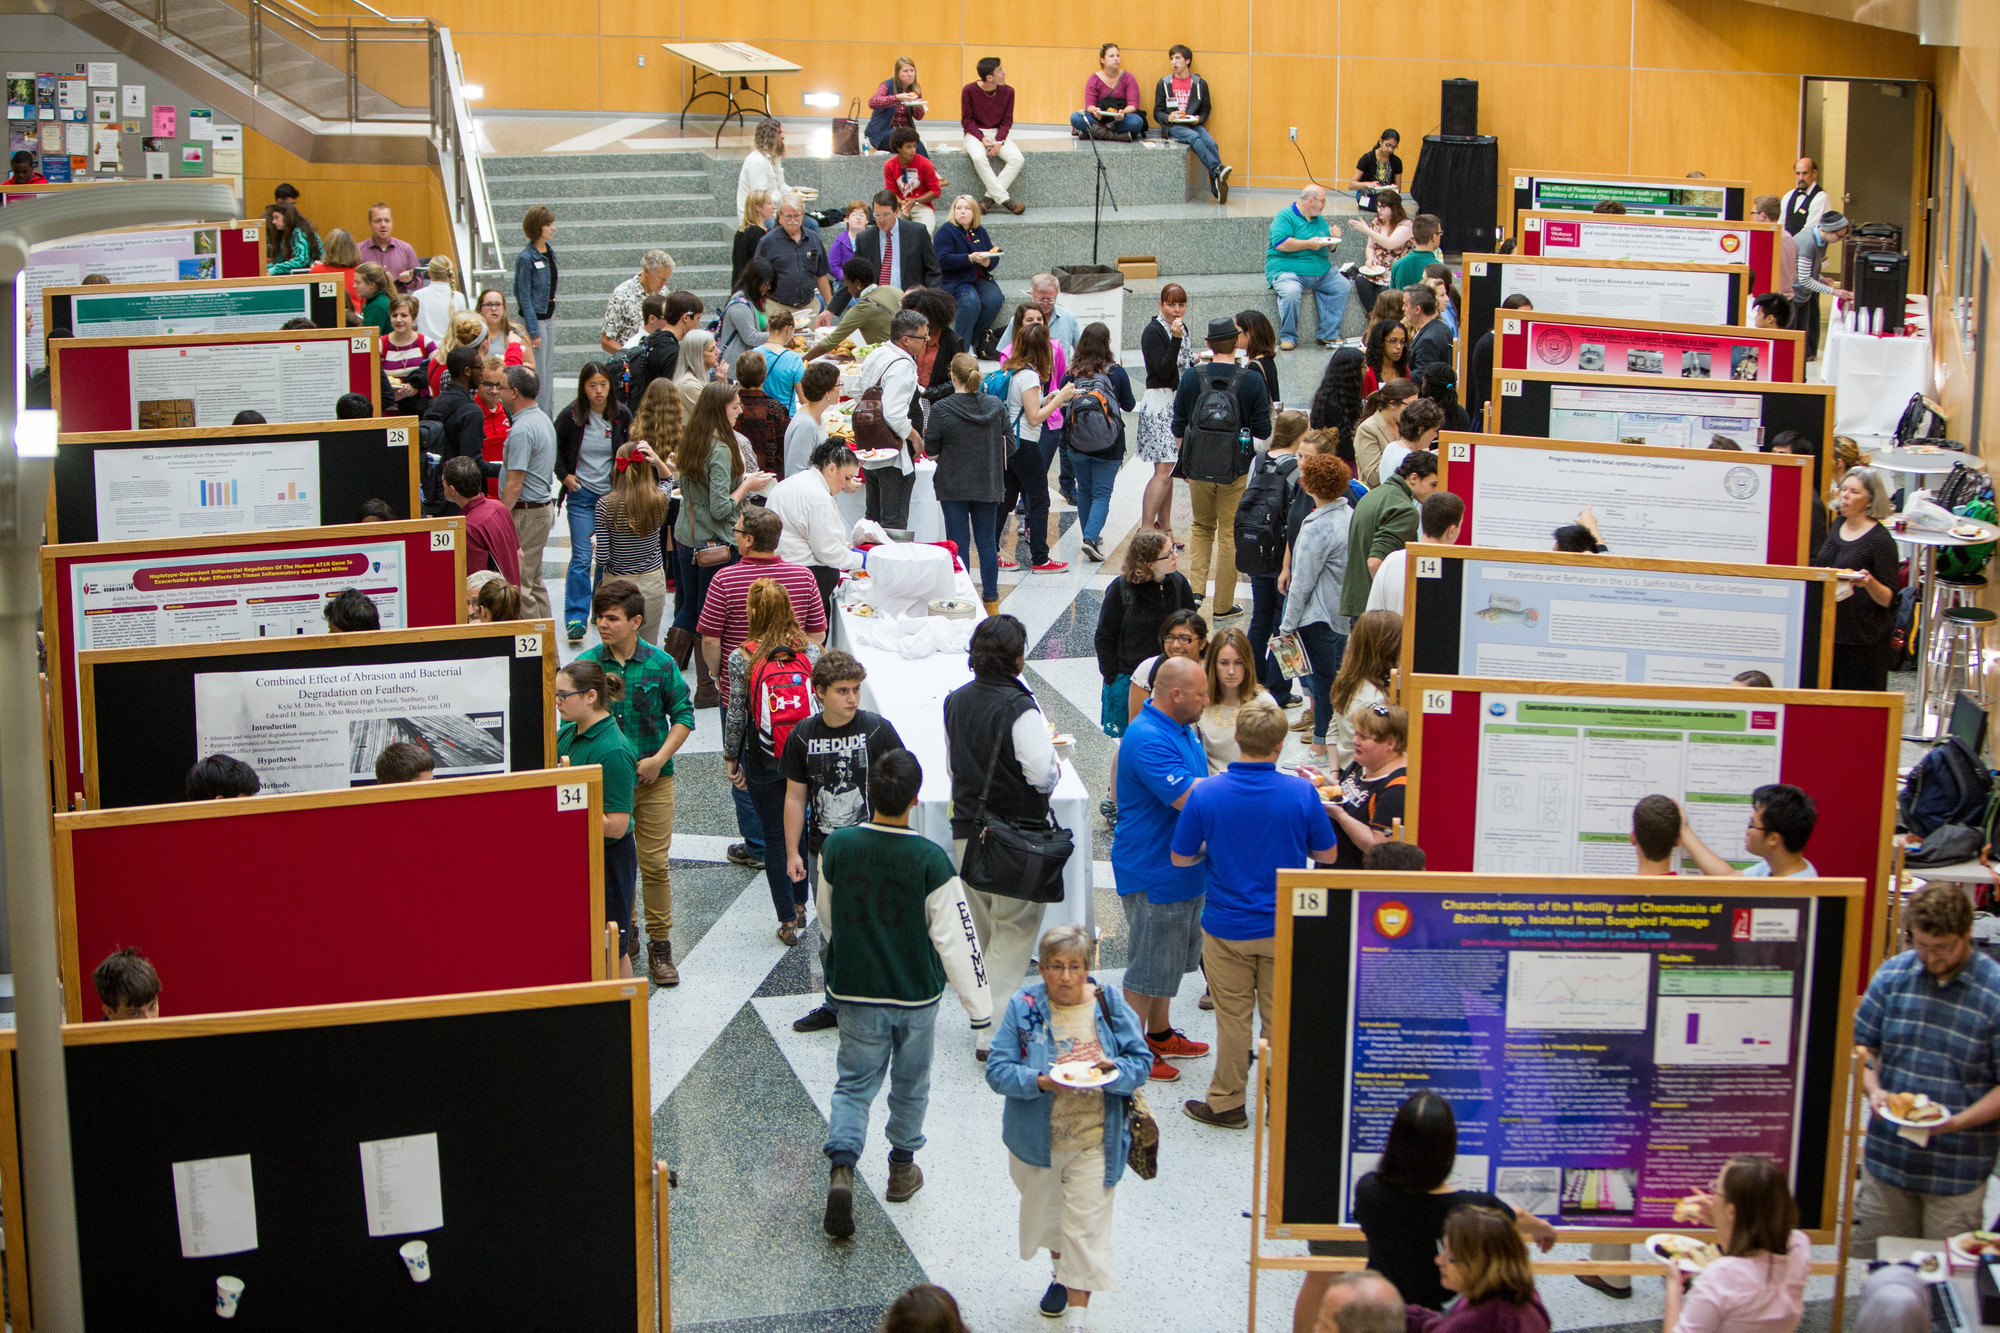 1443009723 2015 ohio wesleyan summer science research symposium. %28photo by mark schmitter%29